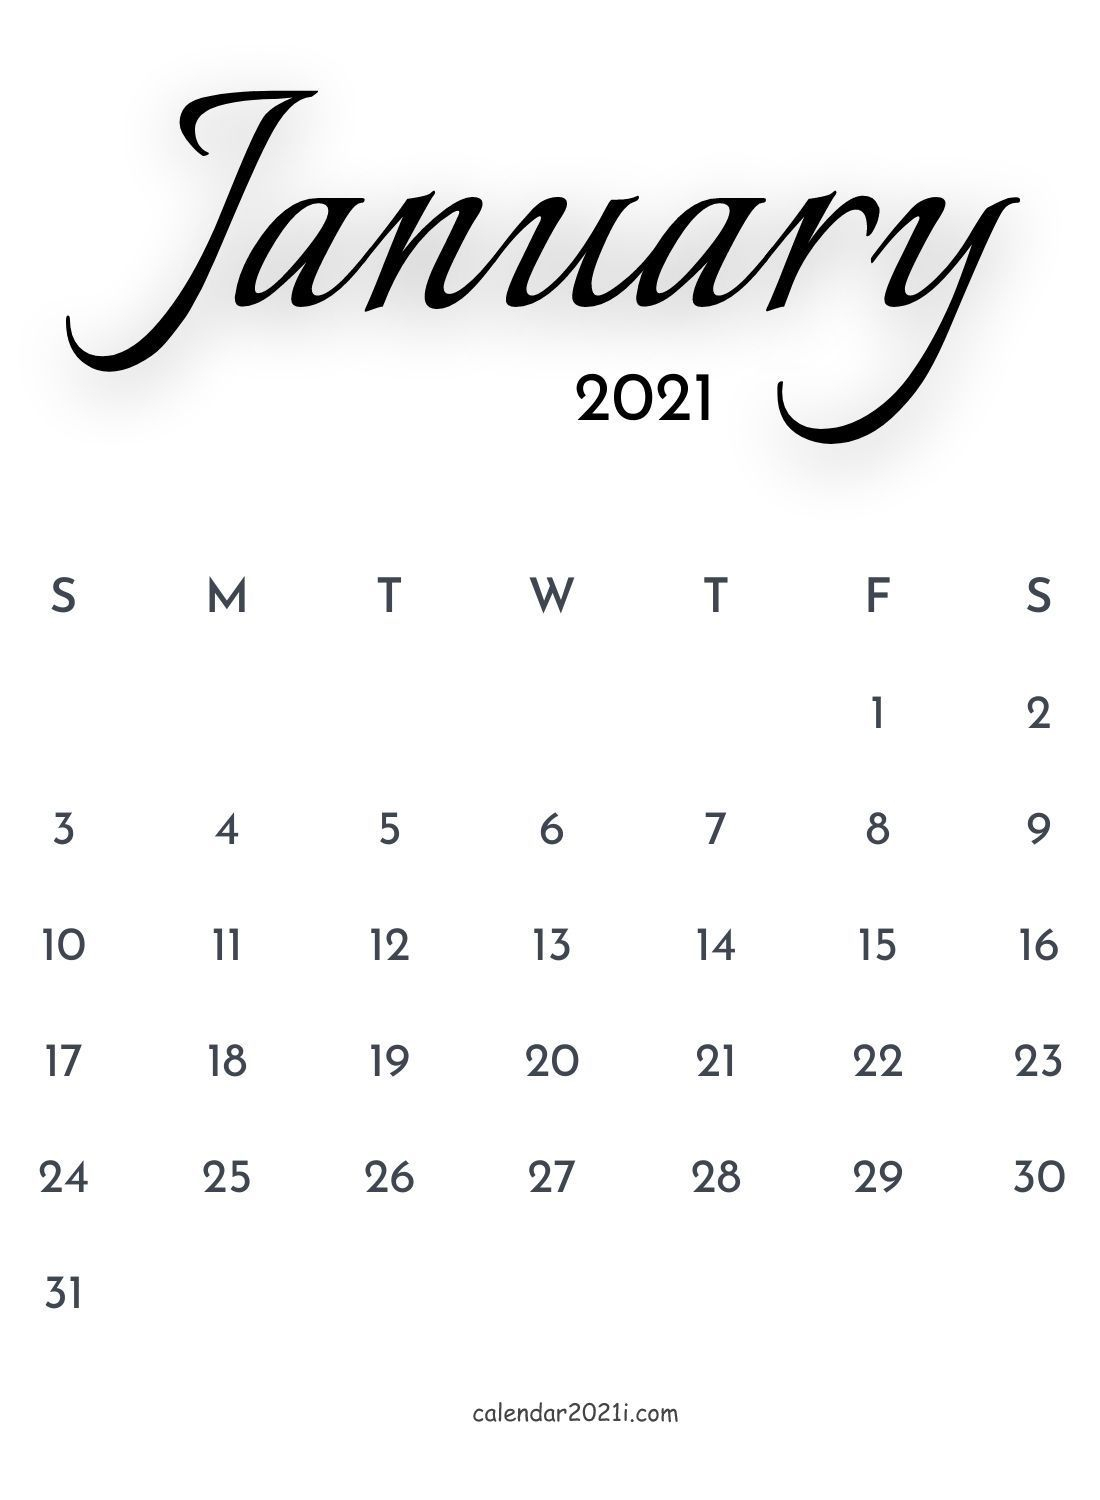 January 2021 Calligraphy Calendar Free Download